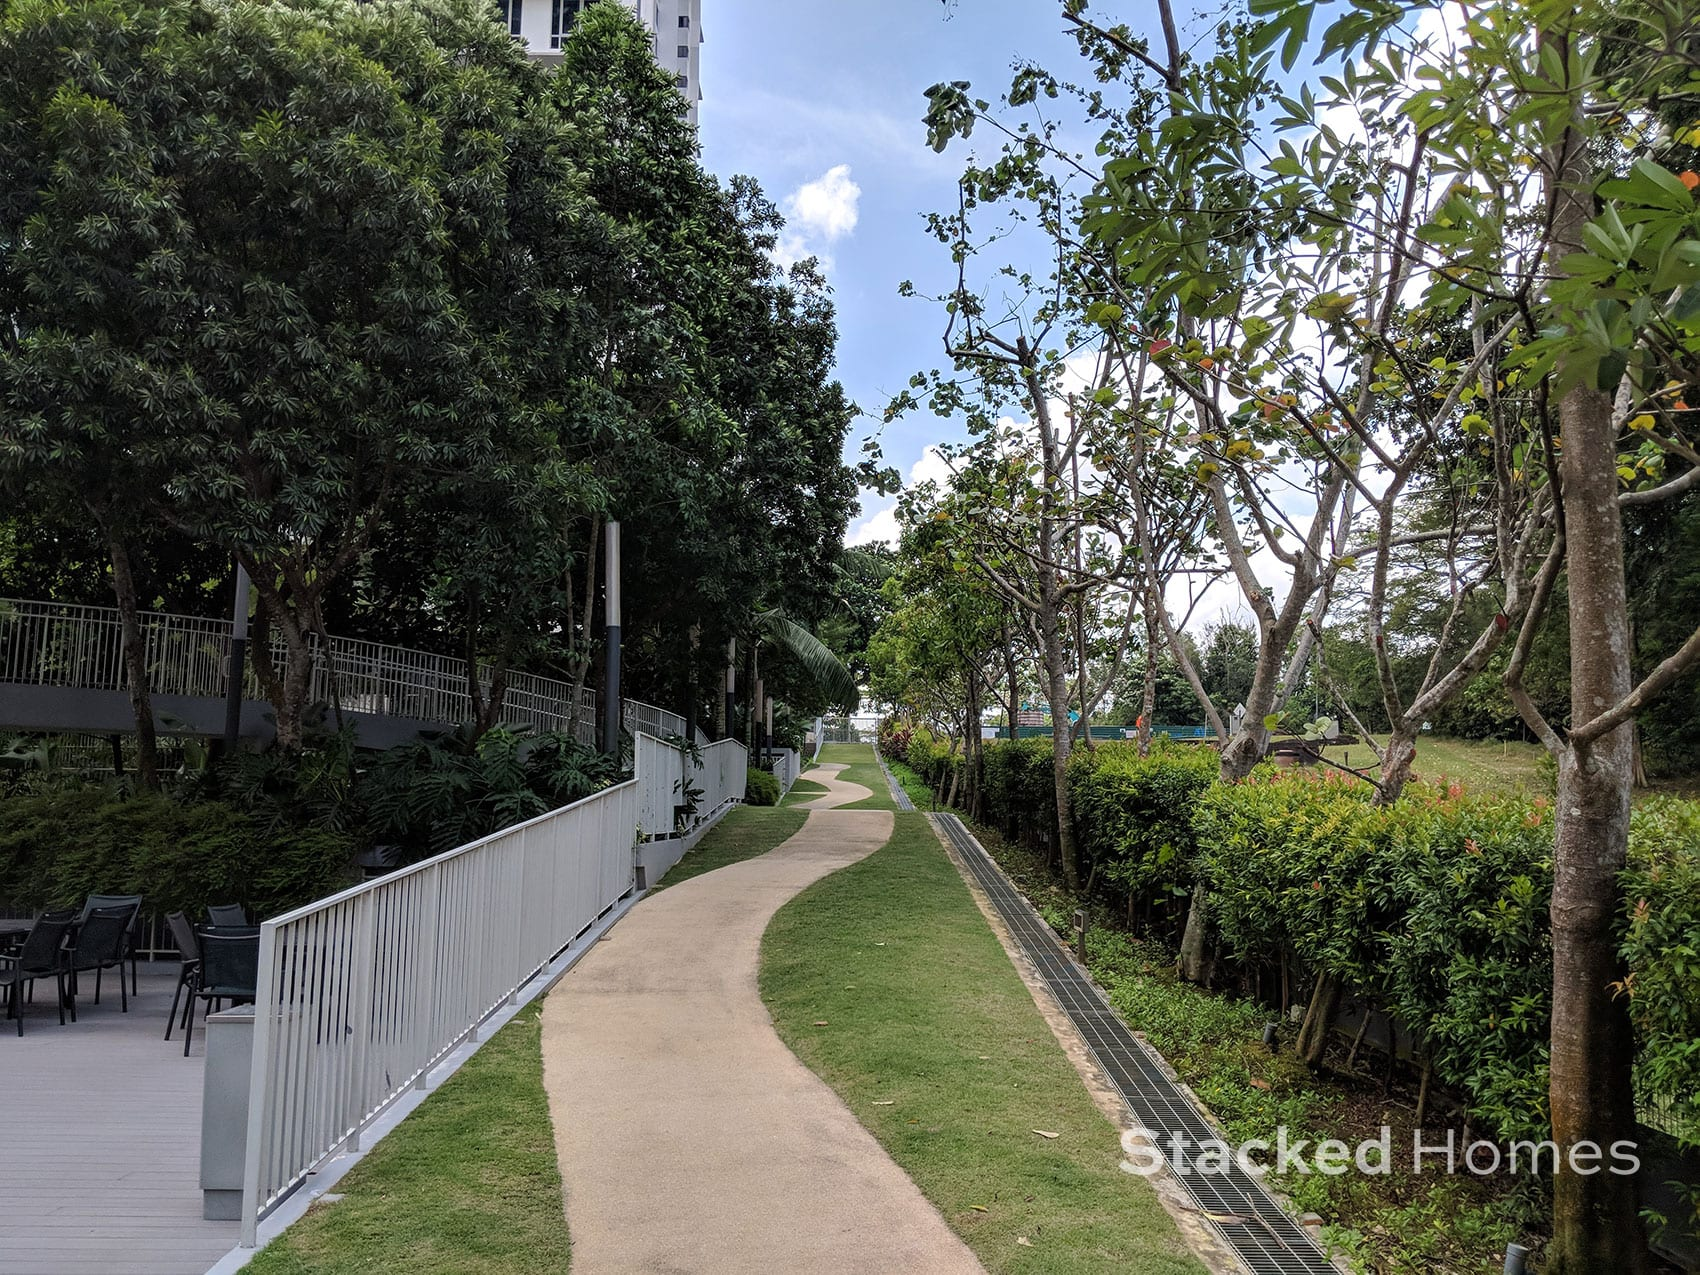 tree house condo jogging track